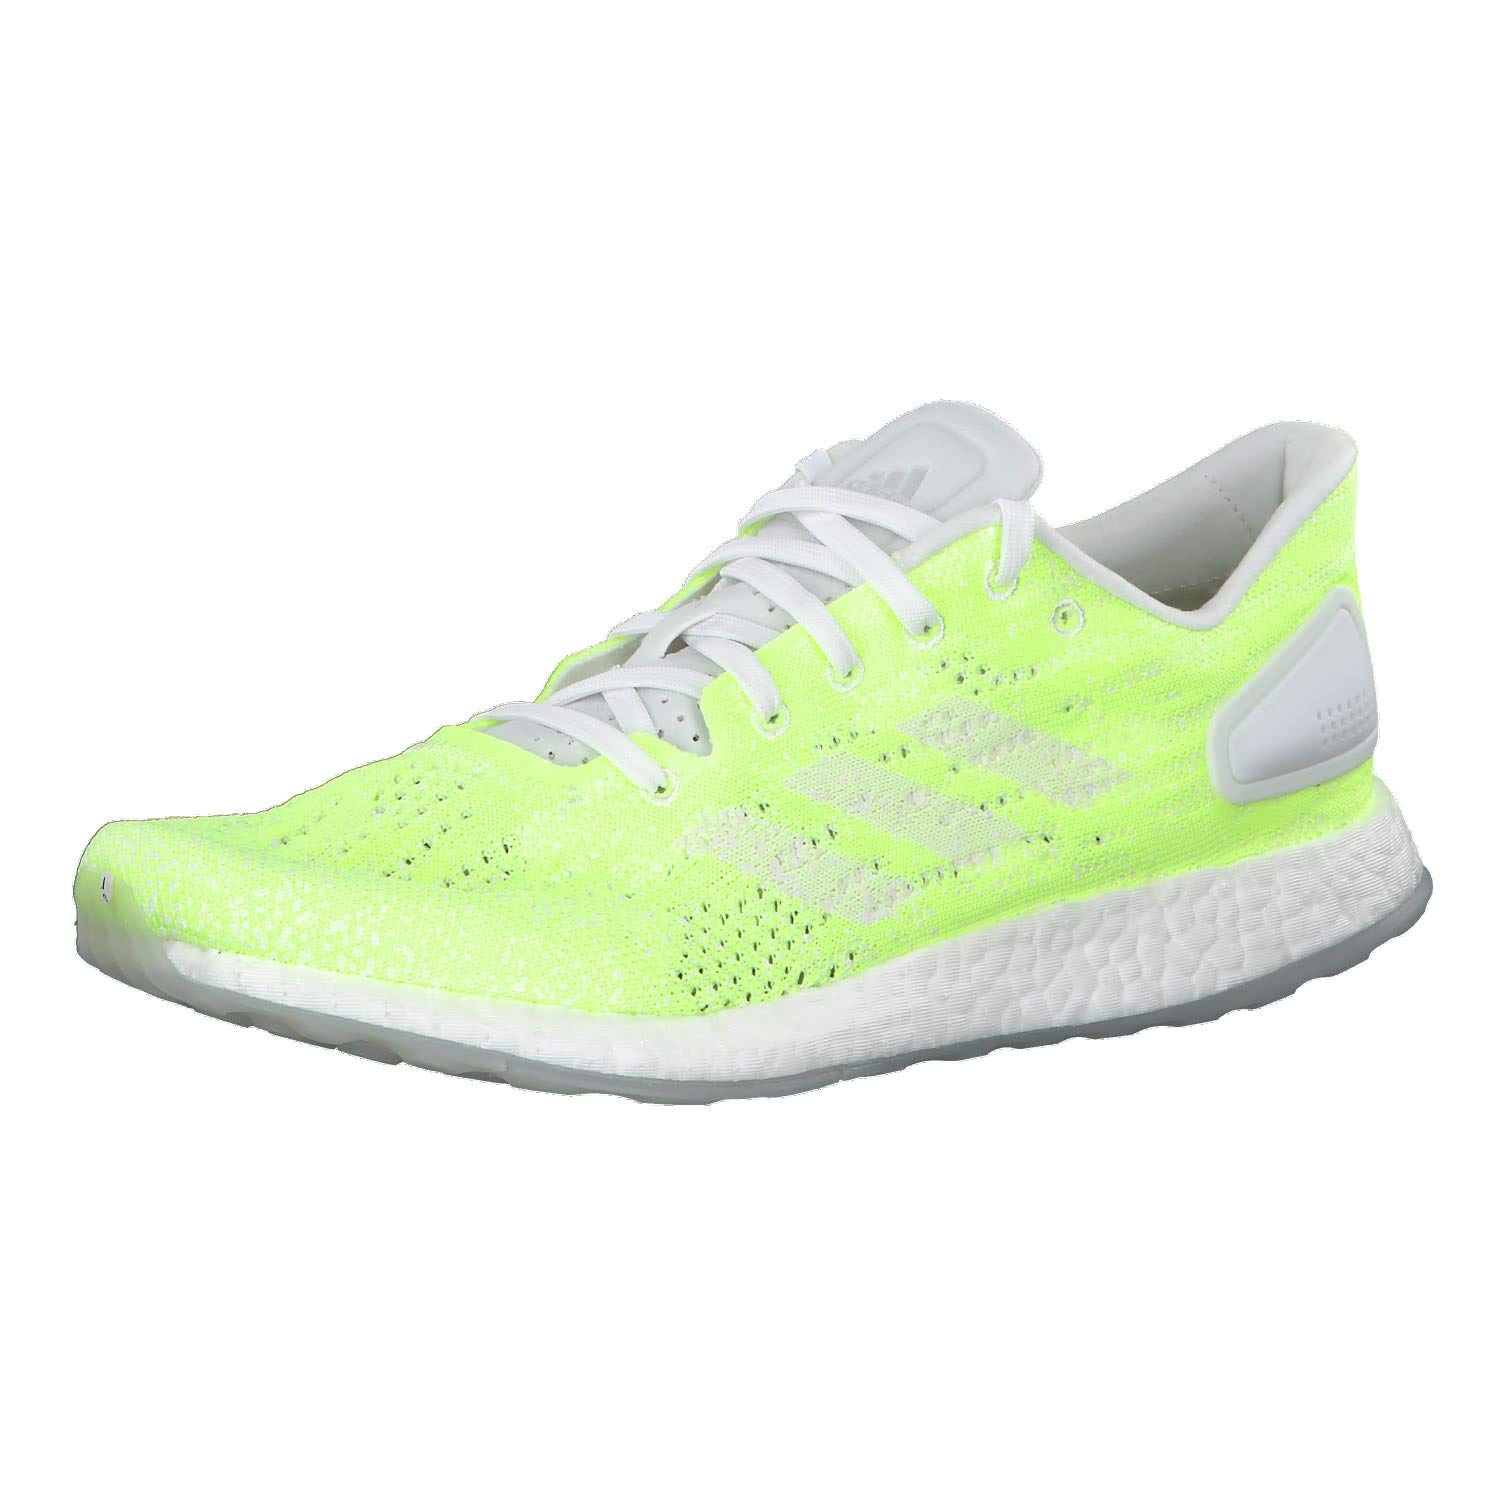 timeless design 51e84 901d2 adidas Men's Pureboost DPR Ltd Running Shoes: Amazon.co.uk ...